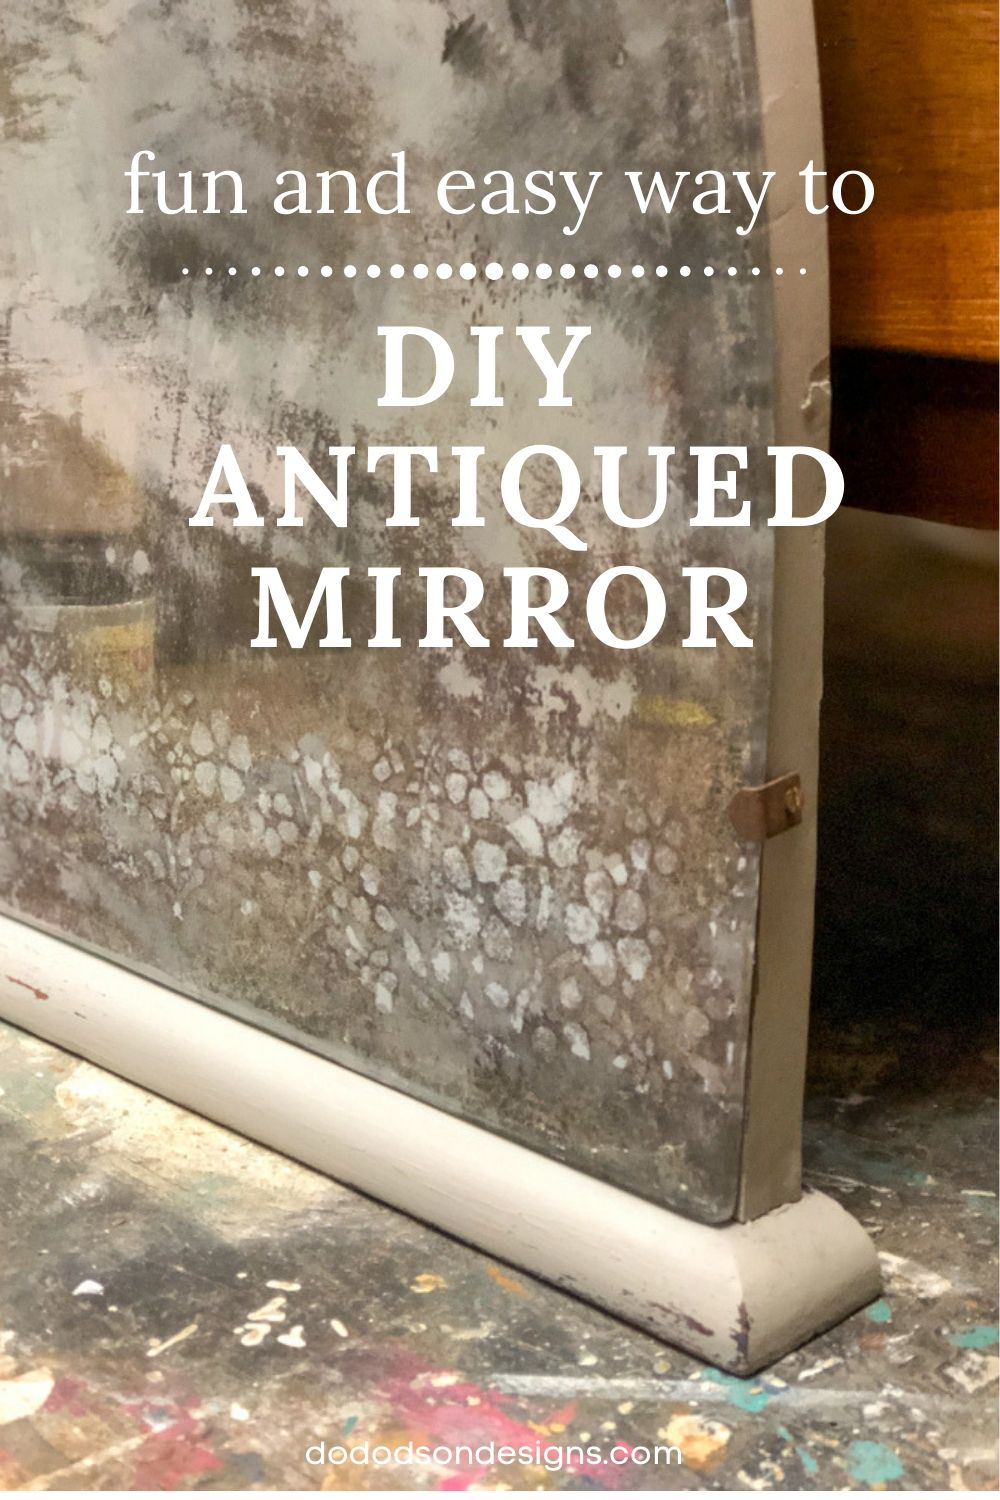 DIY Antique Mirror Tutorial- 4 Easy Steps